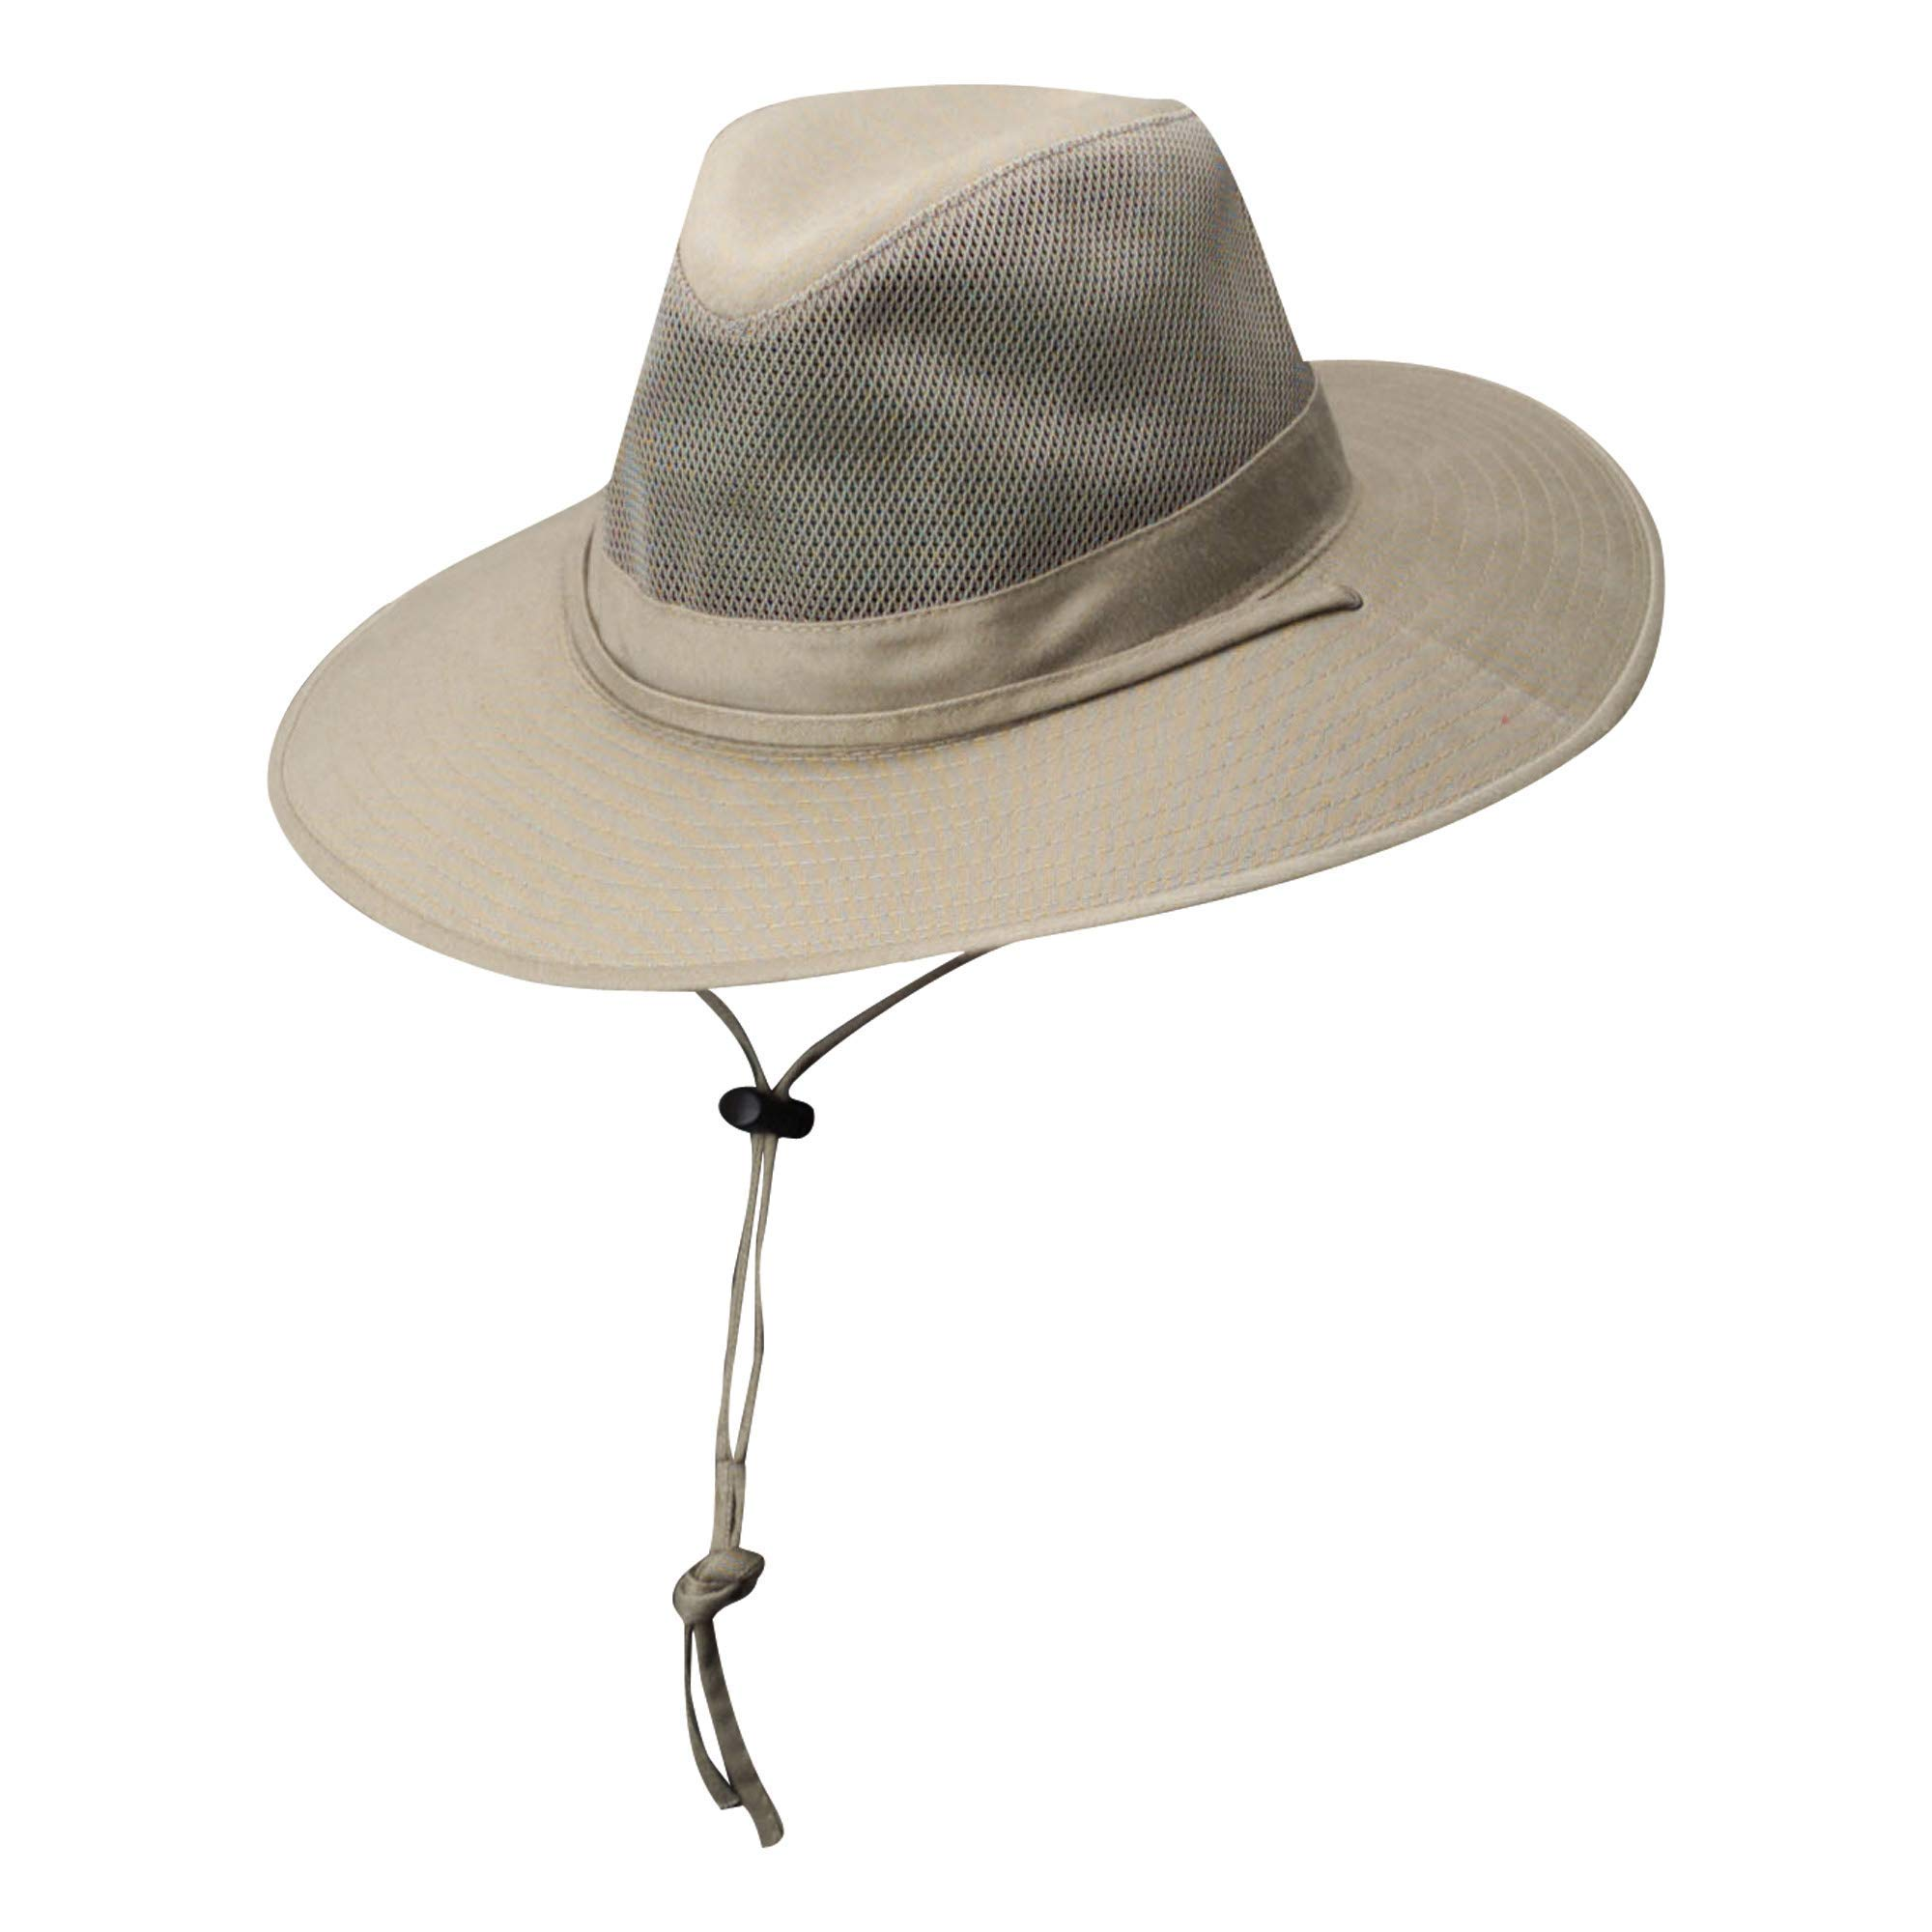 Solarweave SPF 50+ Safari Hat by Dorfman Pacific (Oatmeal large)